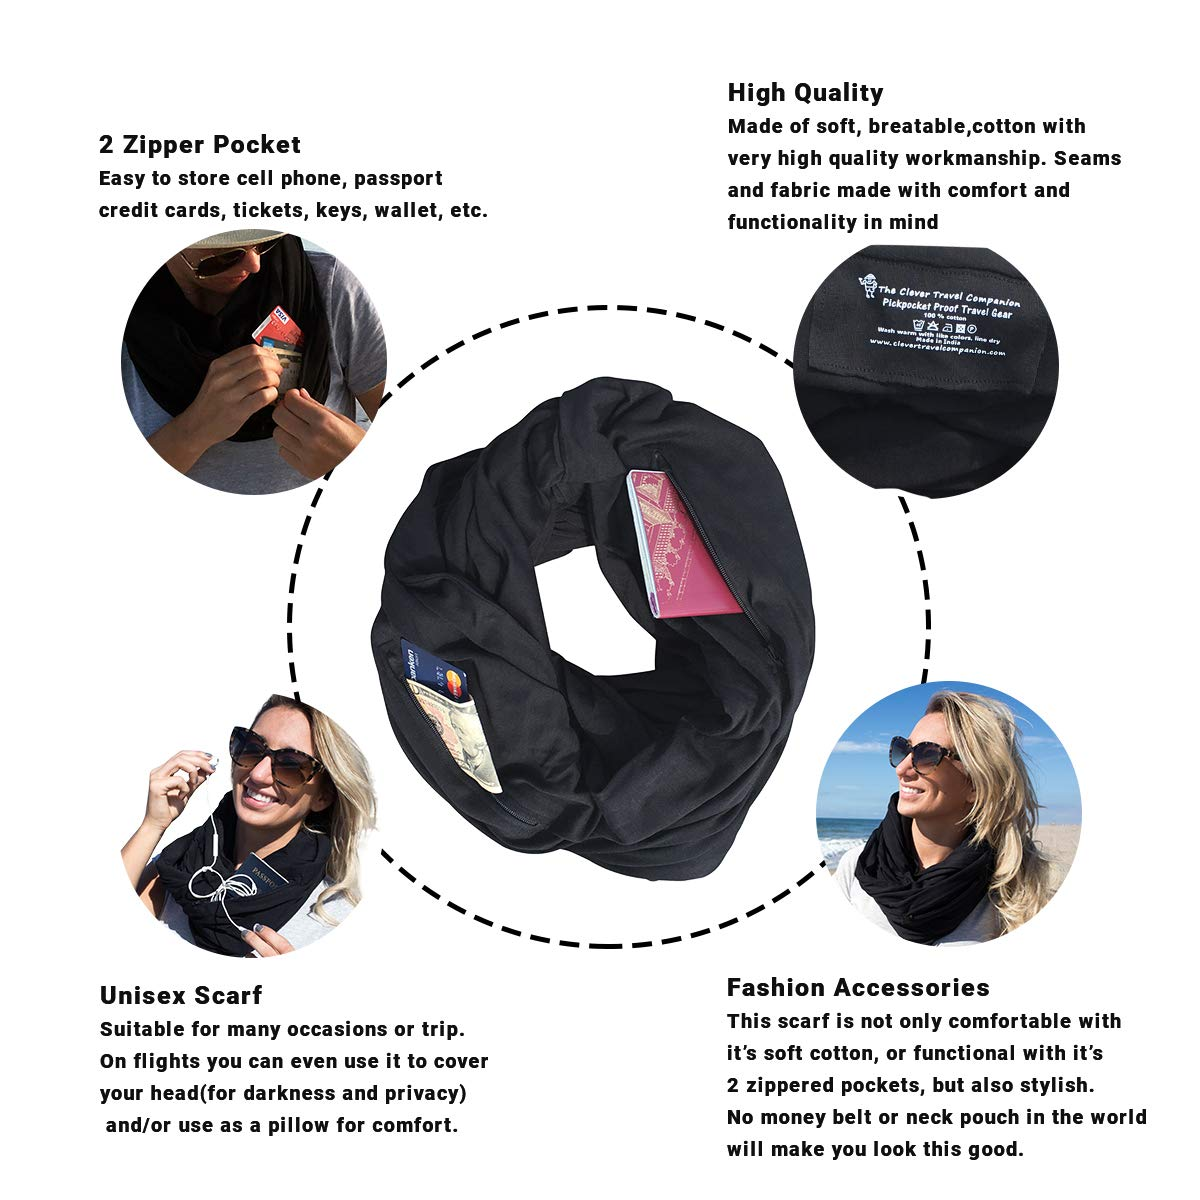 00-01S030S Clever Travel Companion Travel Scarf with 2 Hidden Zipper Pockets 100/% Pickpocket Proof Holiday Tour Black